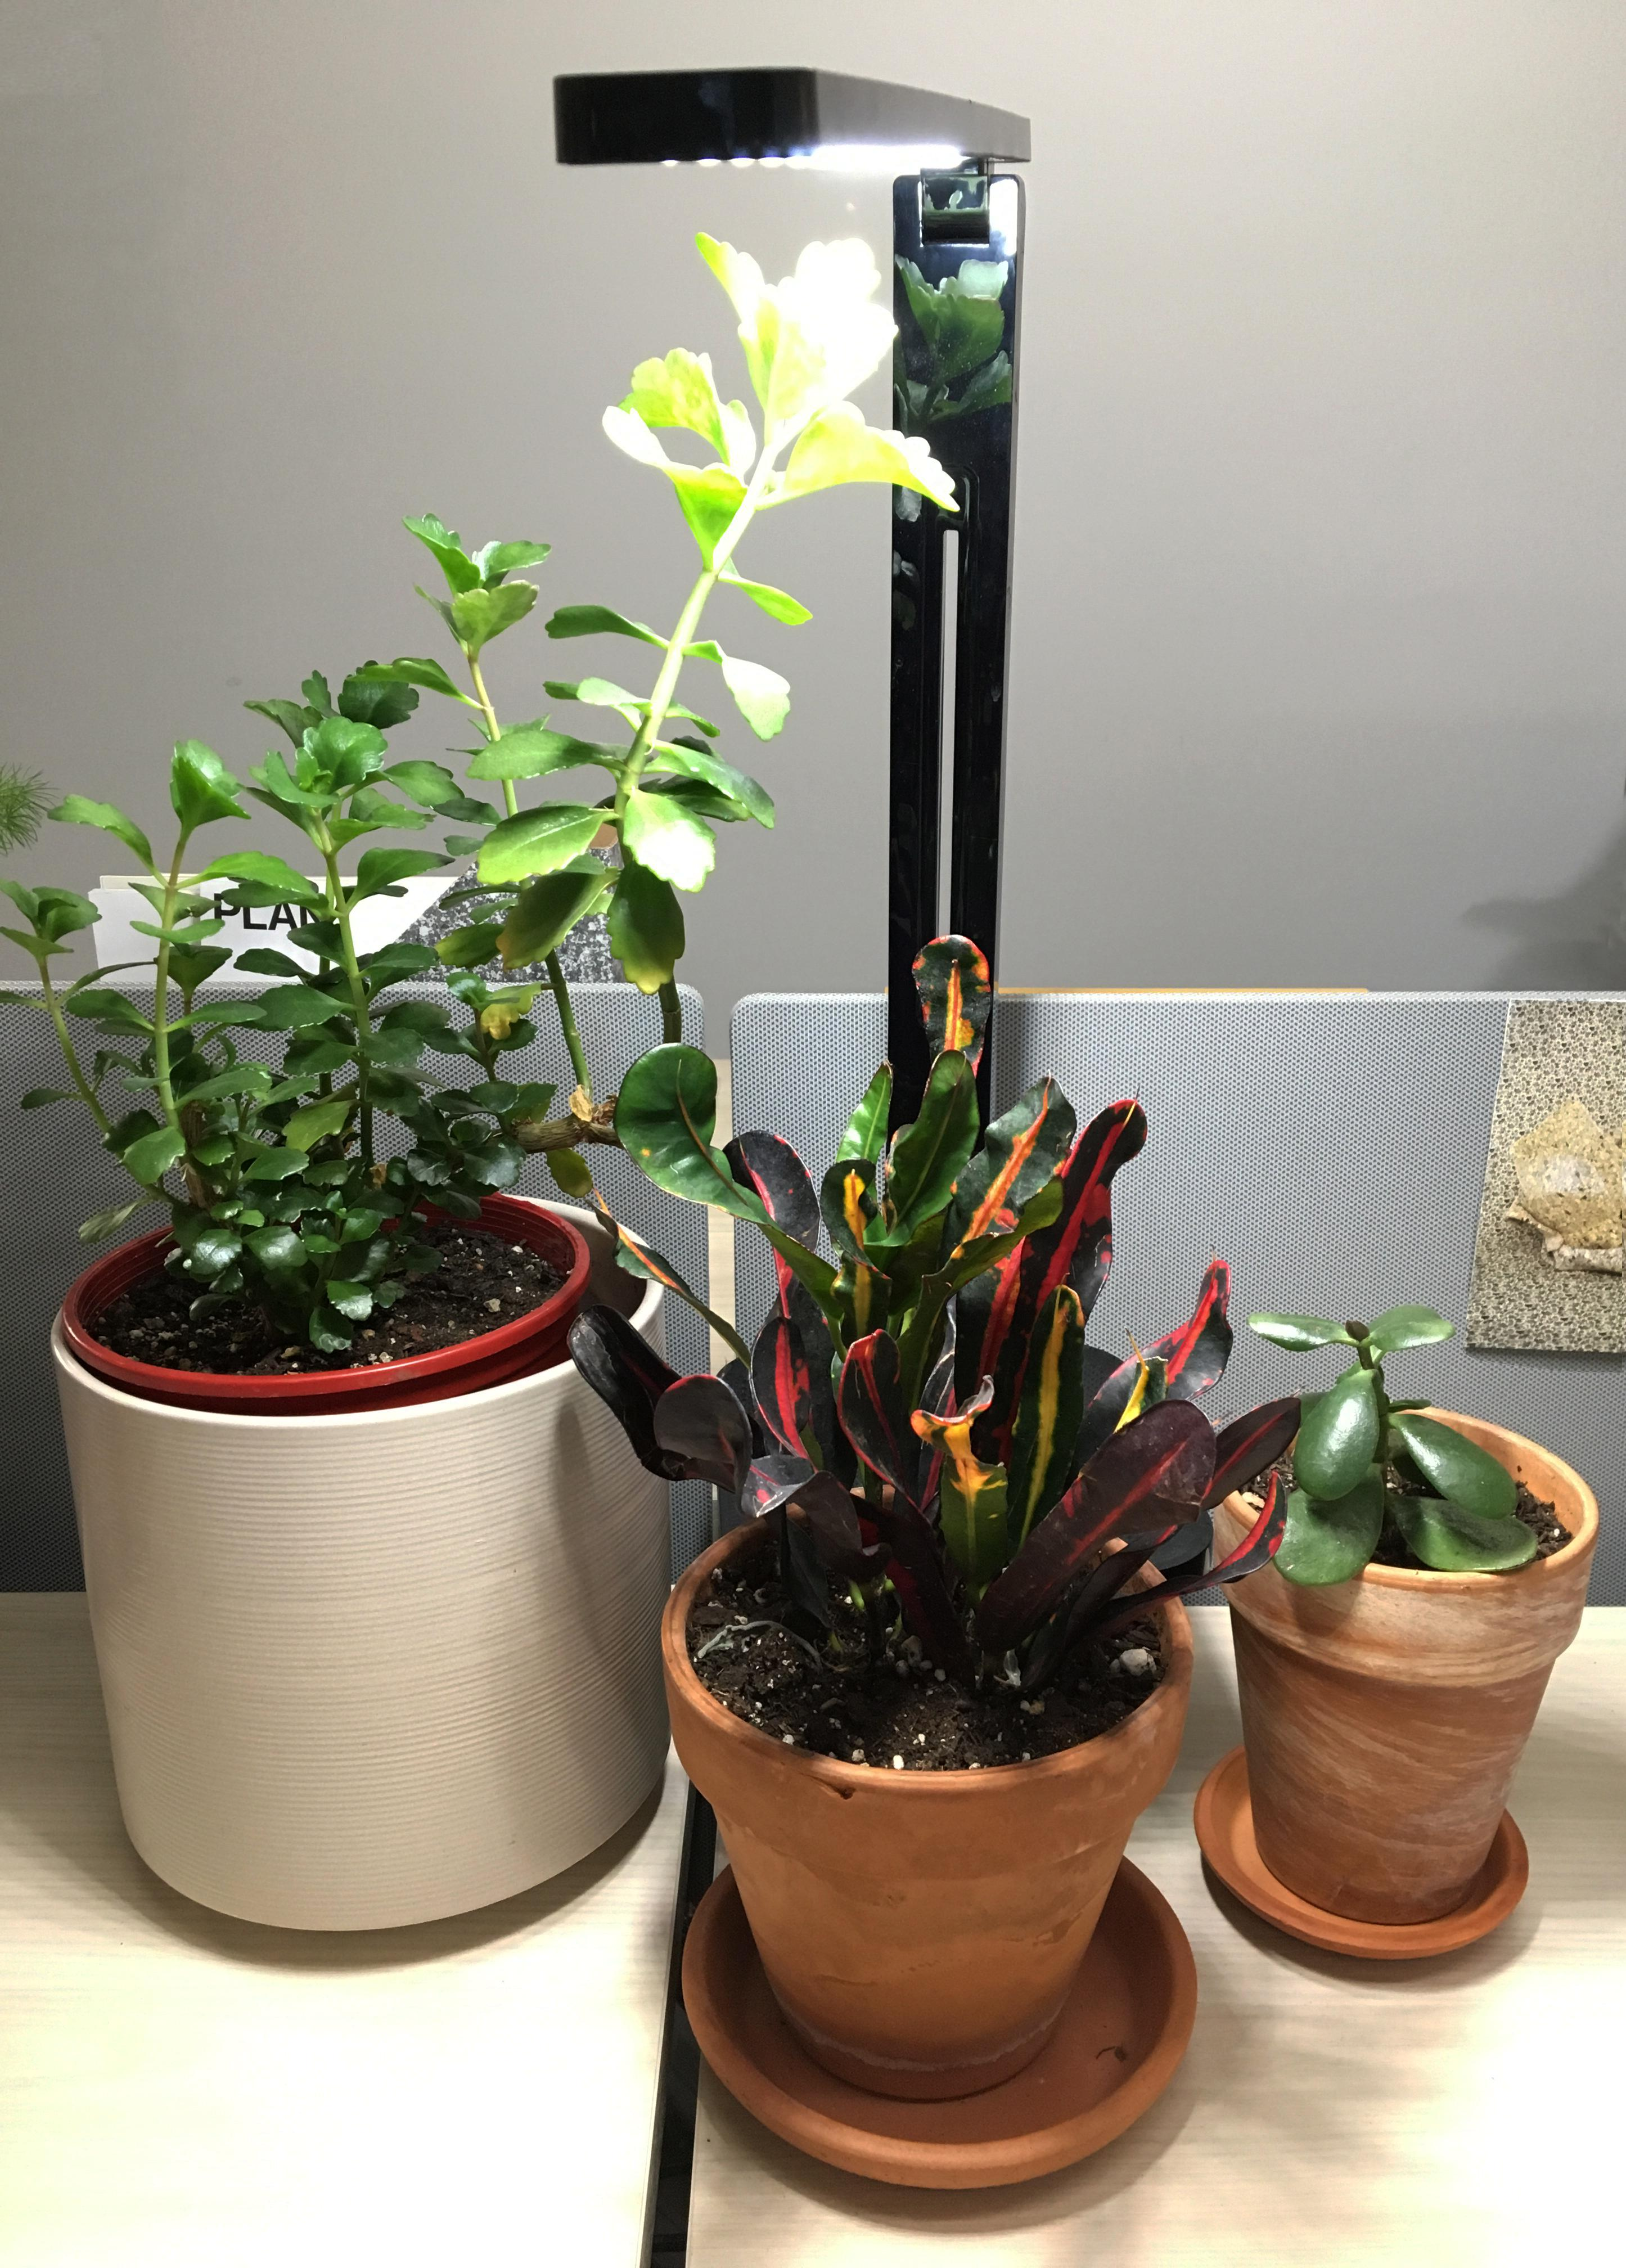 Three plants in ceramic pots sit on an office desk, illuminated by a minimal, LED light.